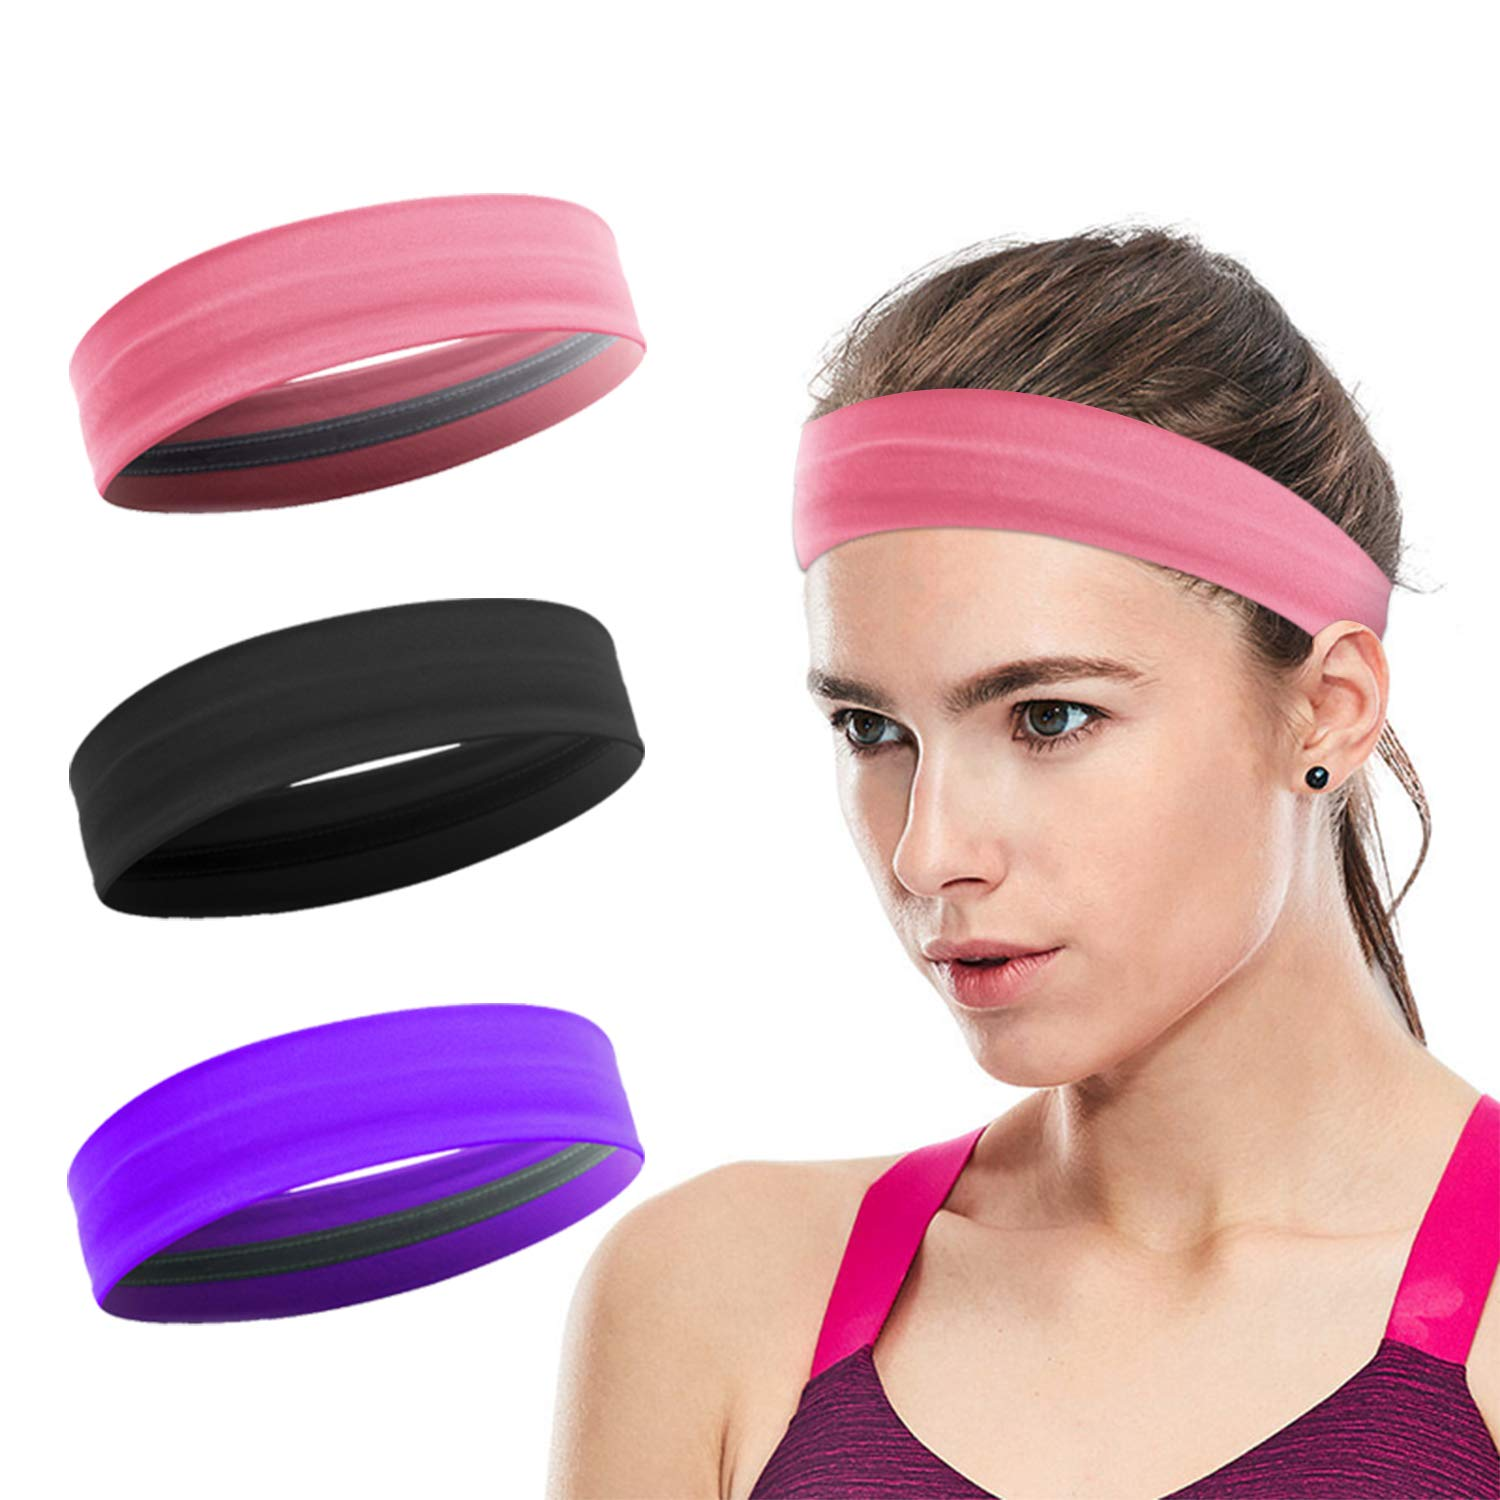 XIXOV Workout Headbands for Women, 3 Pack Stay Put Sweatbands for Women, Head Bands Women Hair, Non-Slip Elastic Sweat Band Head Bands for Sports, Yoga, Fitness, Athletic, Bike